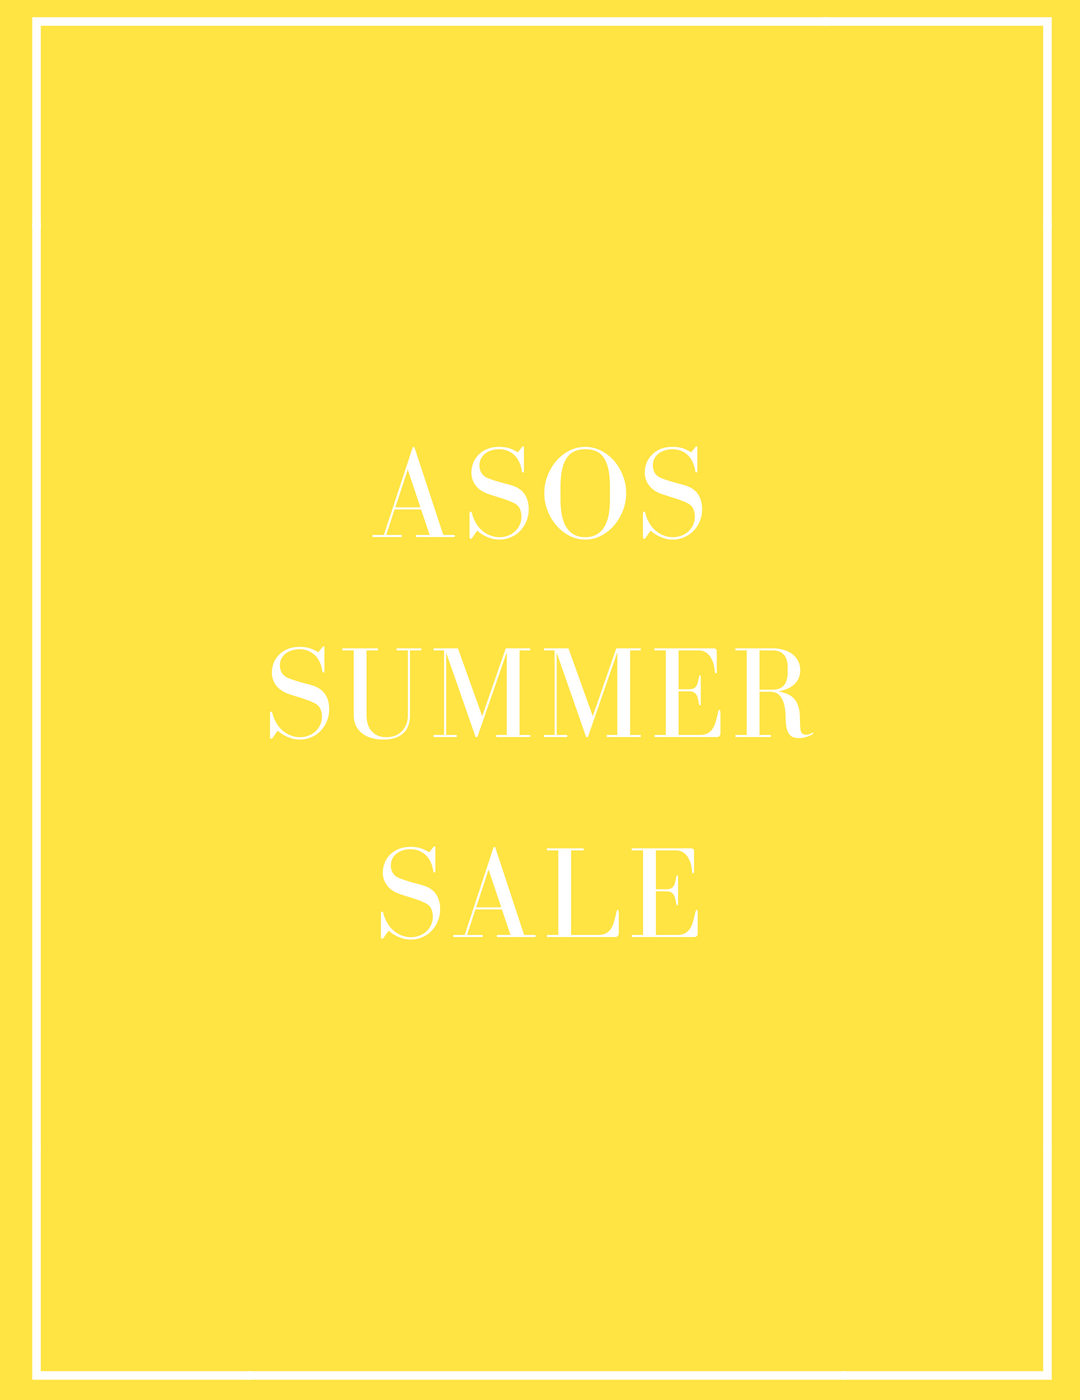 ASOS Summer Sale